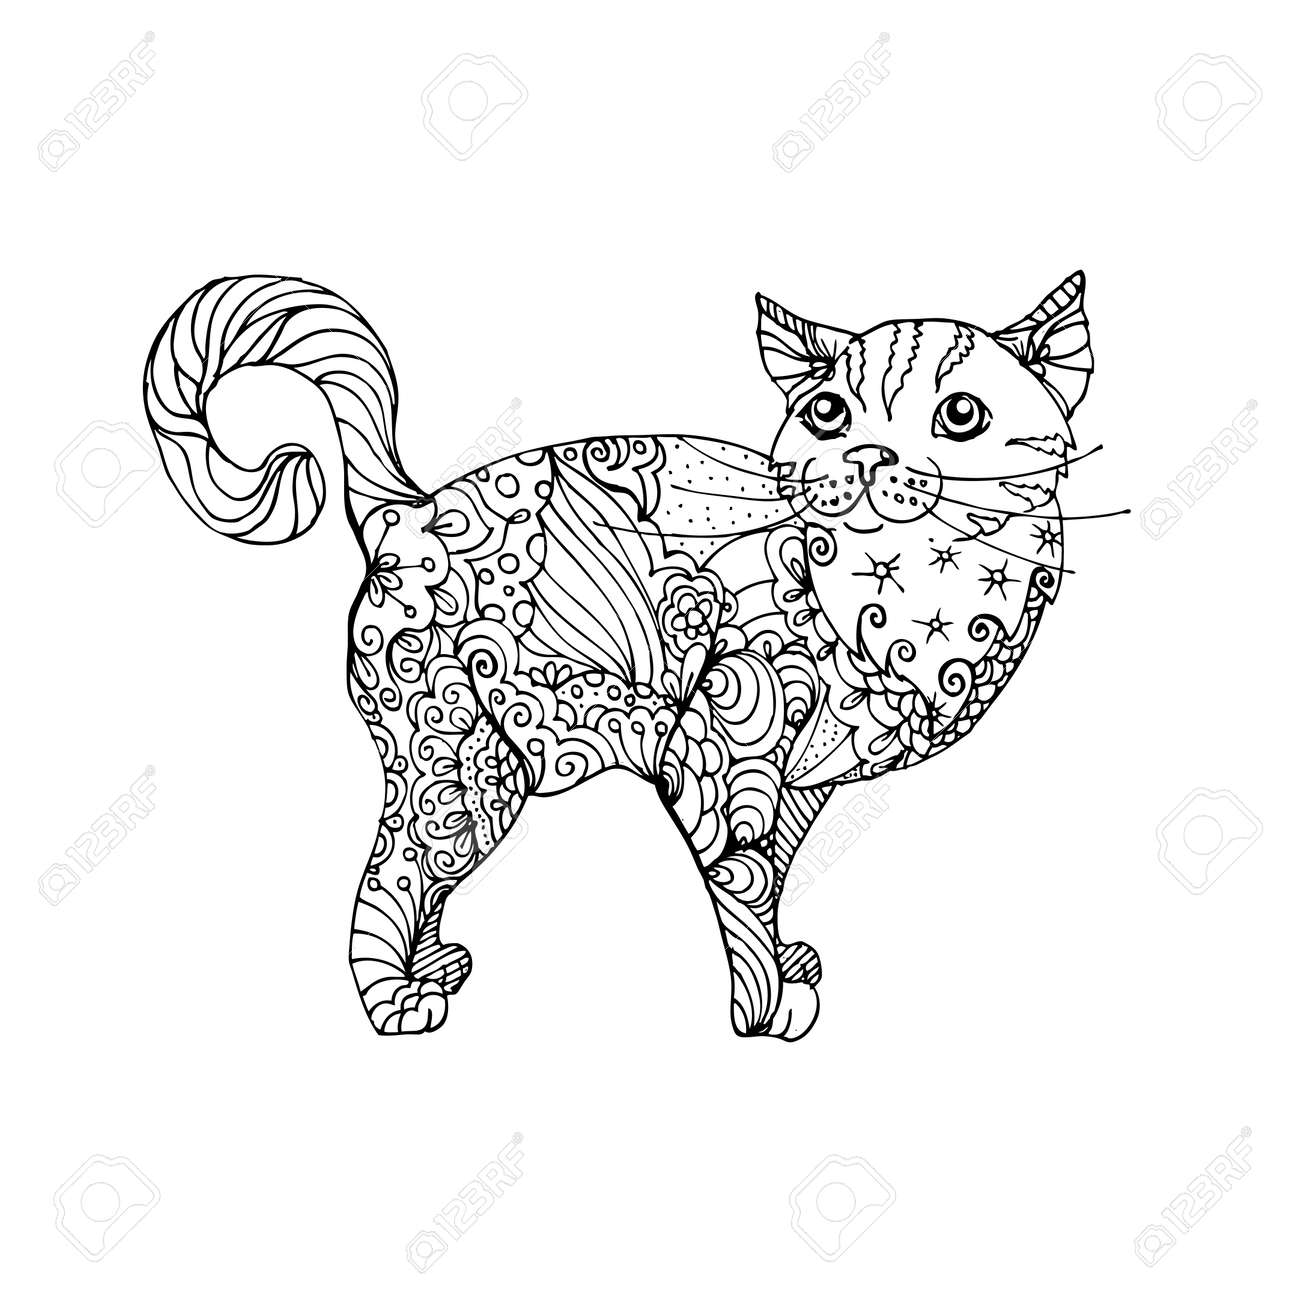 cat for poster images u0026 stock pictures royalty free cat for